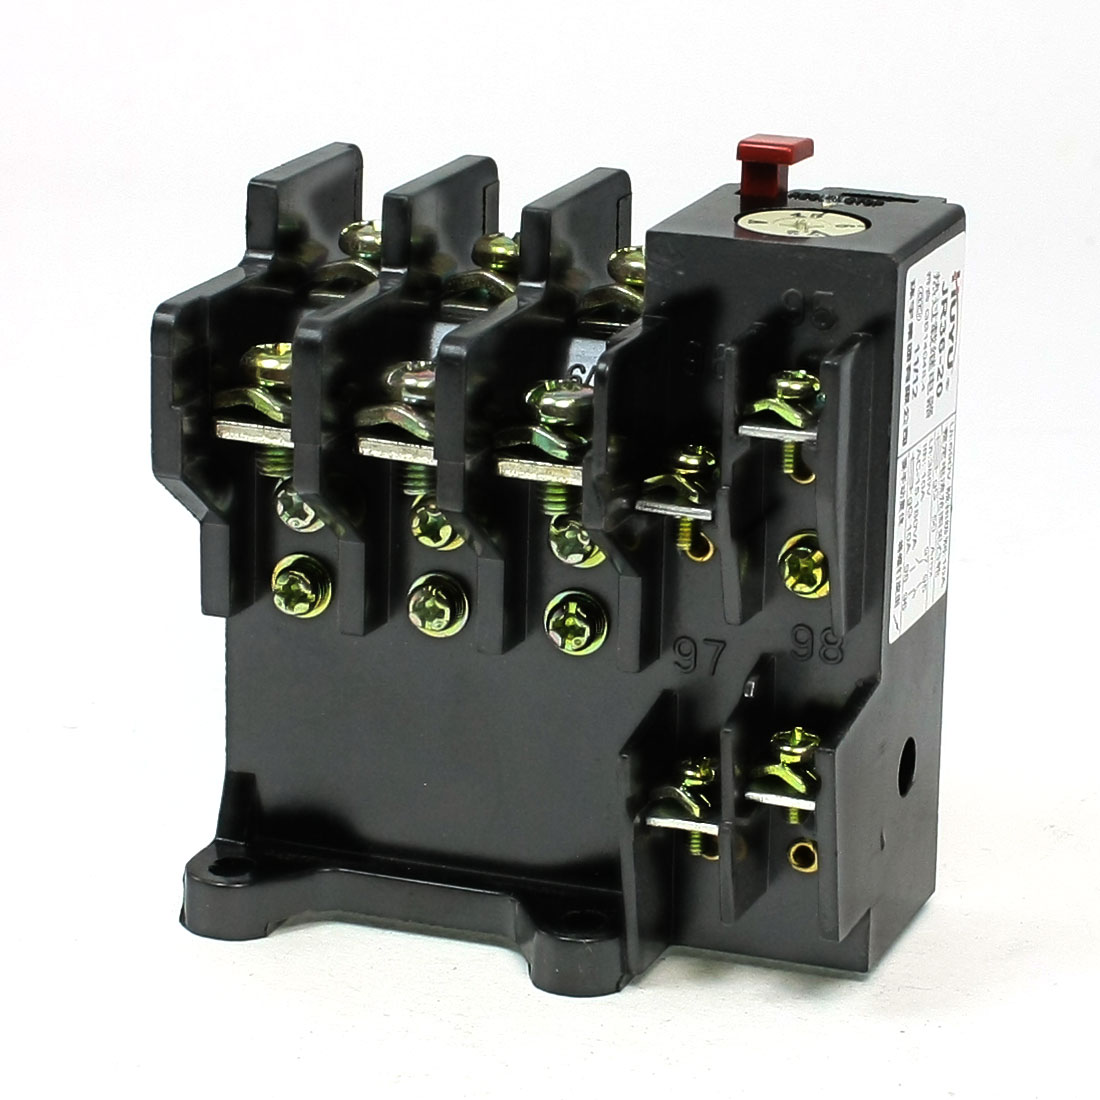 JR36-20 3 Phase 1NO 1NC 4.5-7.2A Range Electric Thermal Overload Relay